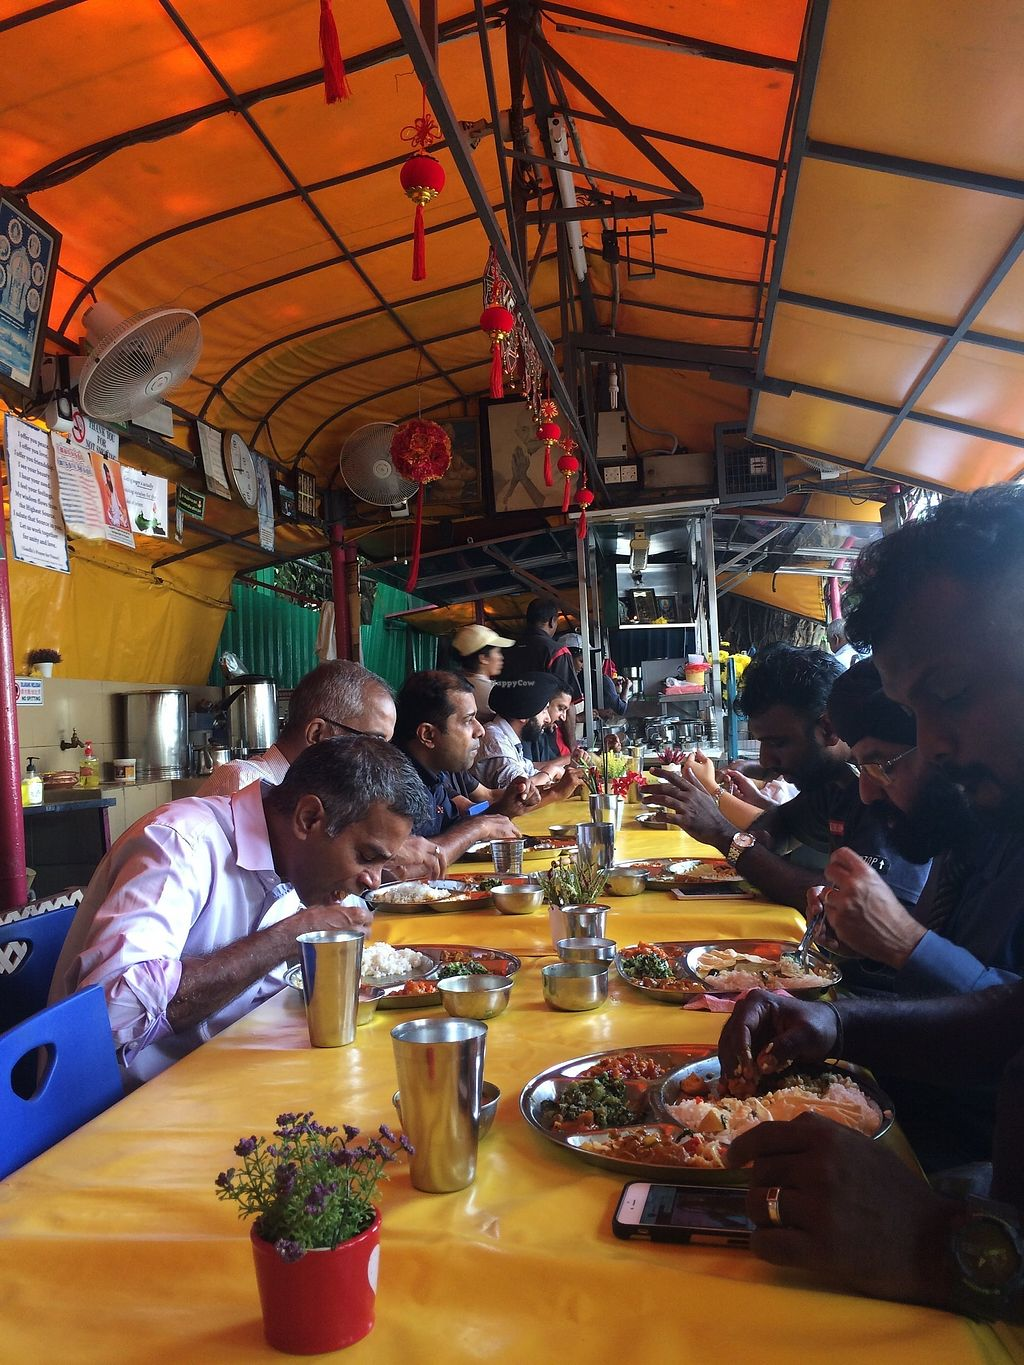 "Photo of Gerai Makanan  by <a href=""/members/profile/LaurenceMontreuil"">LaurenceMontreuil</a> <br/>one single long table to eat <br/> January 31, 2018  - <a href='/contact/abuse/image/9292/353118'>Report</a>"